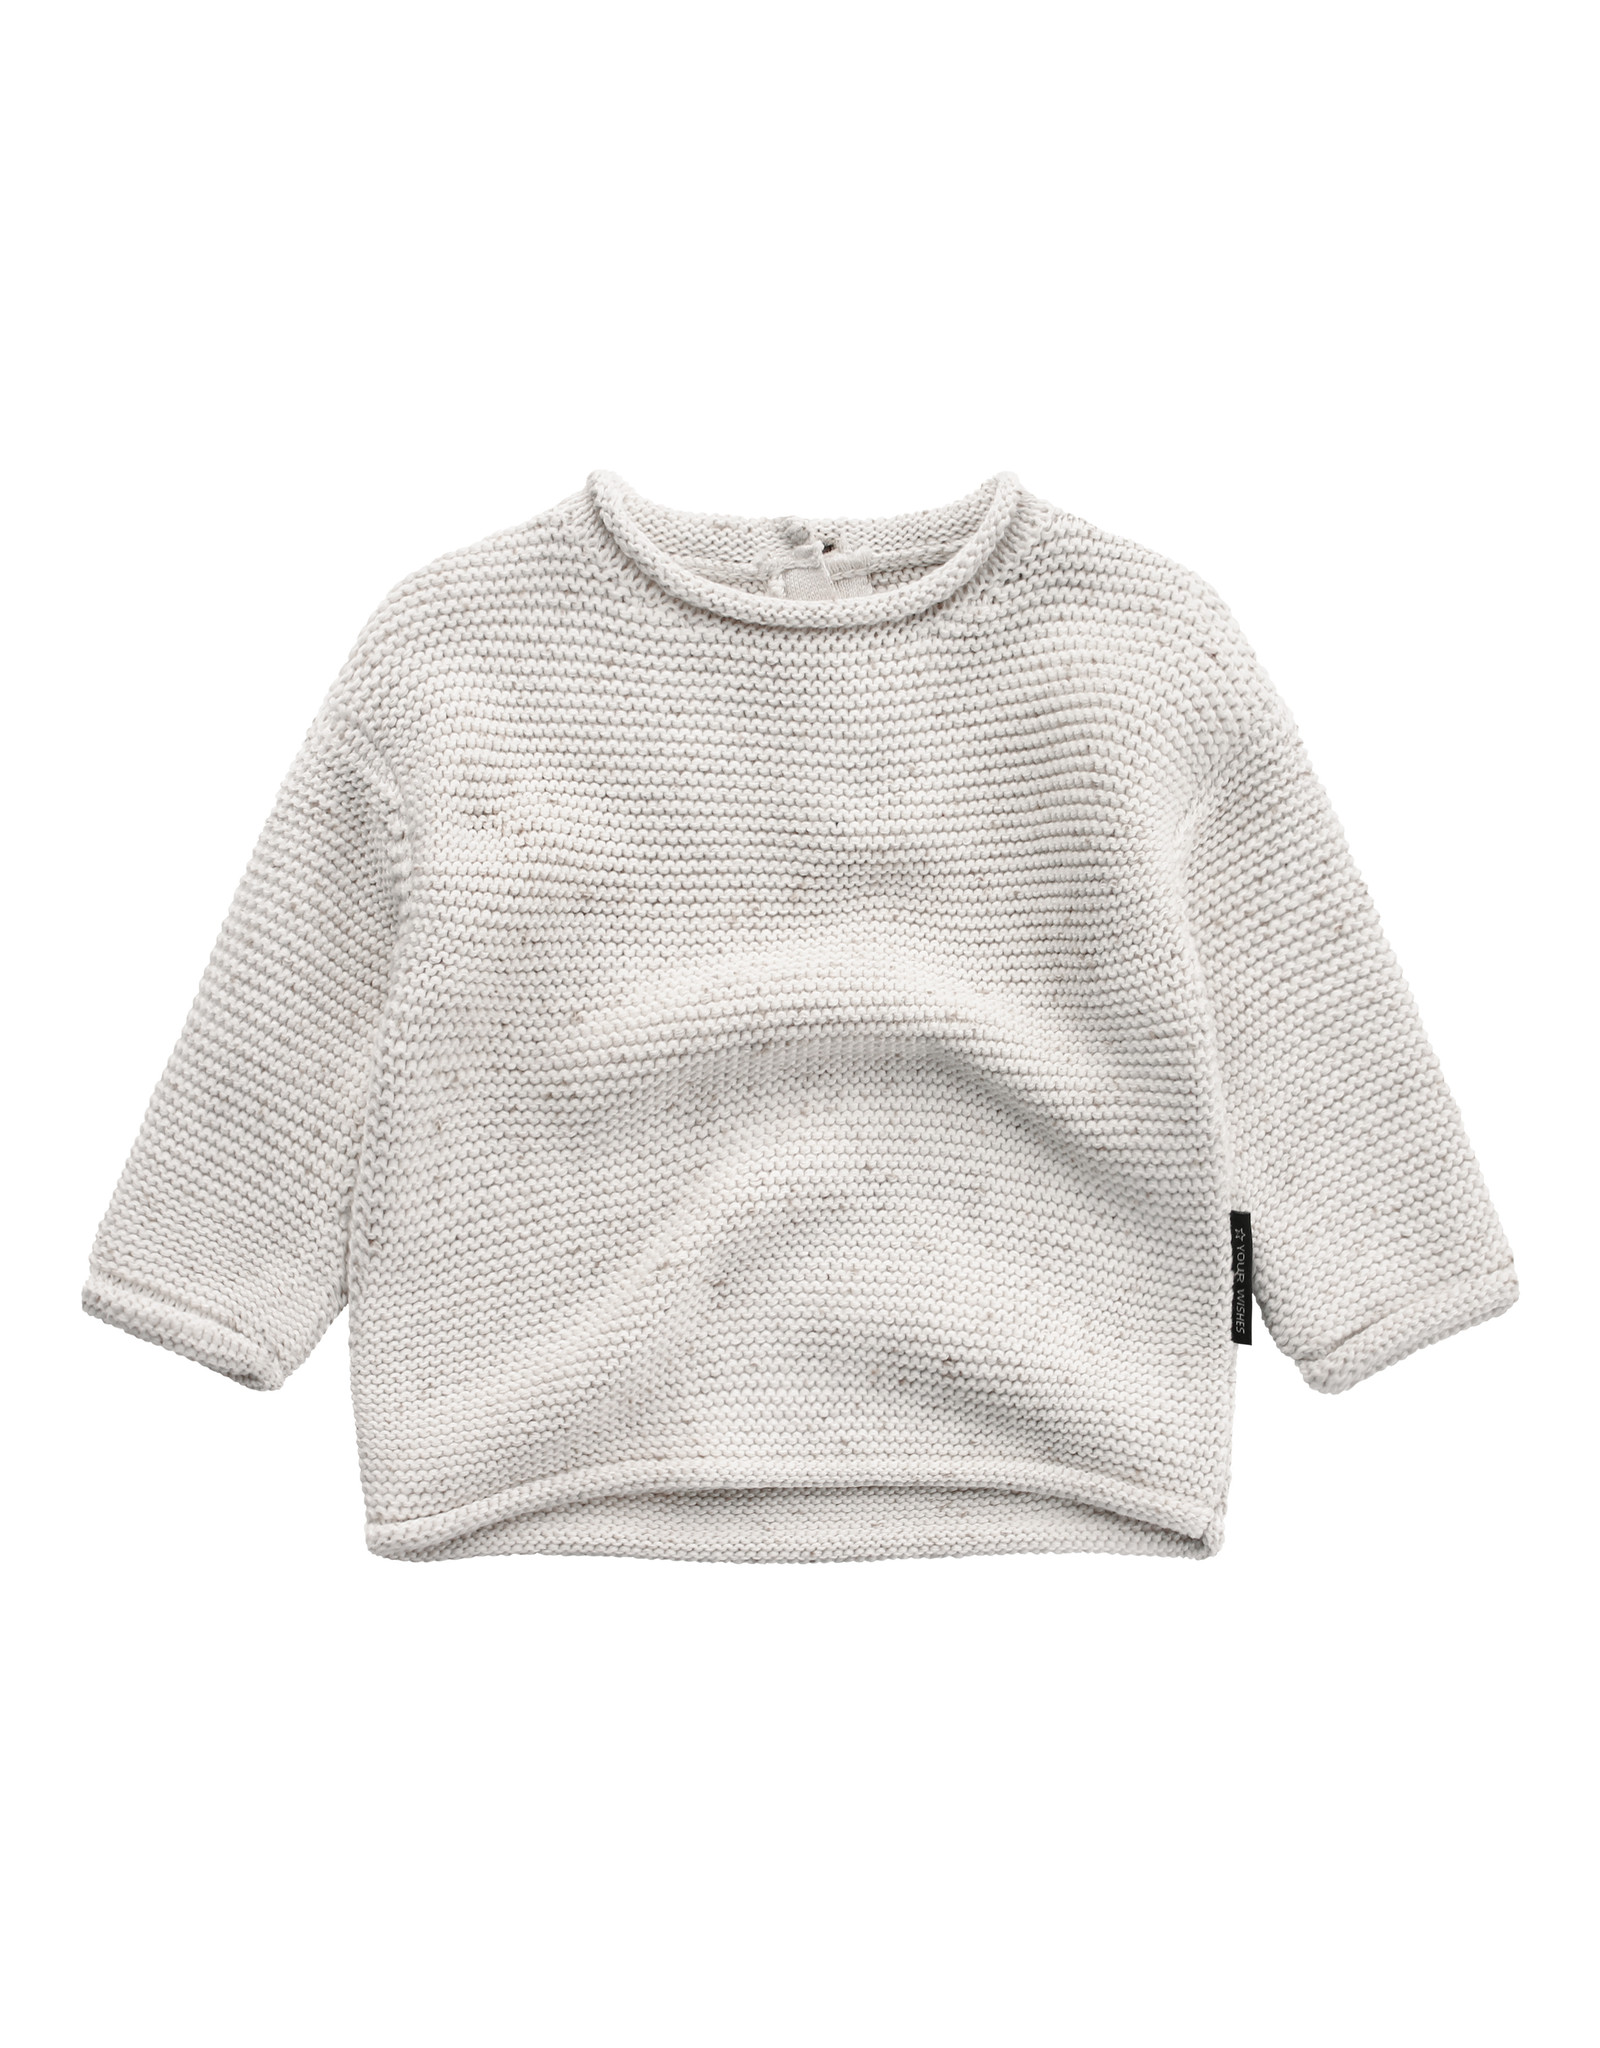 Your Wishes Knit   Boxy Sweater